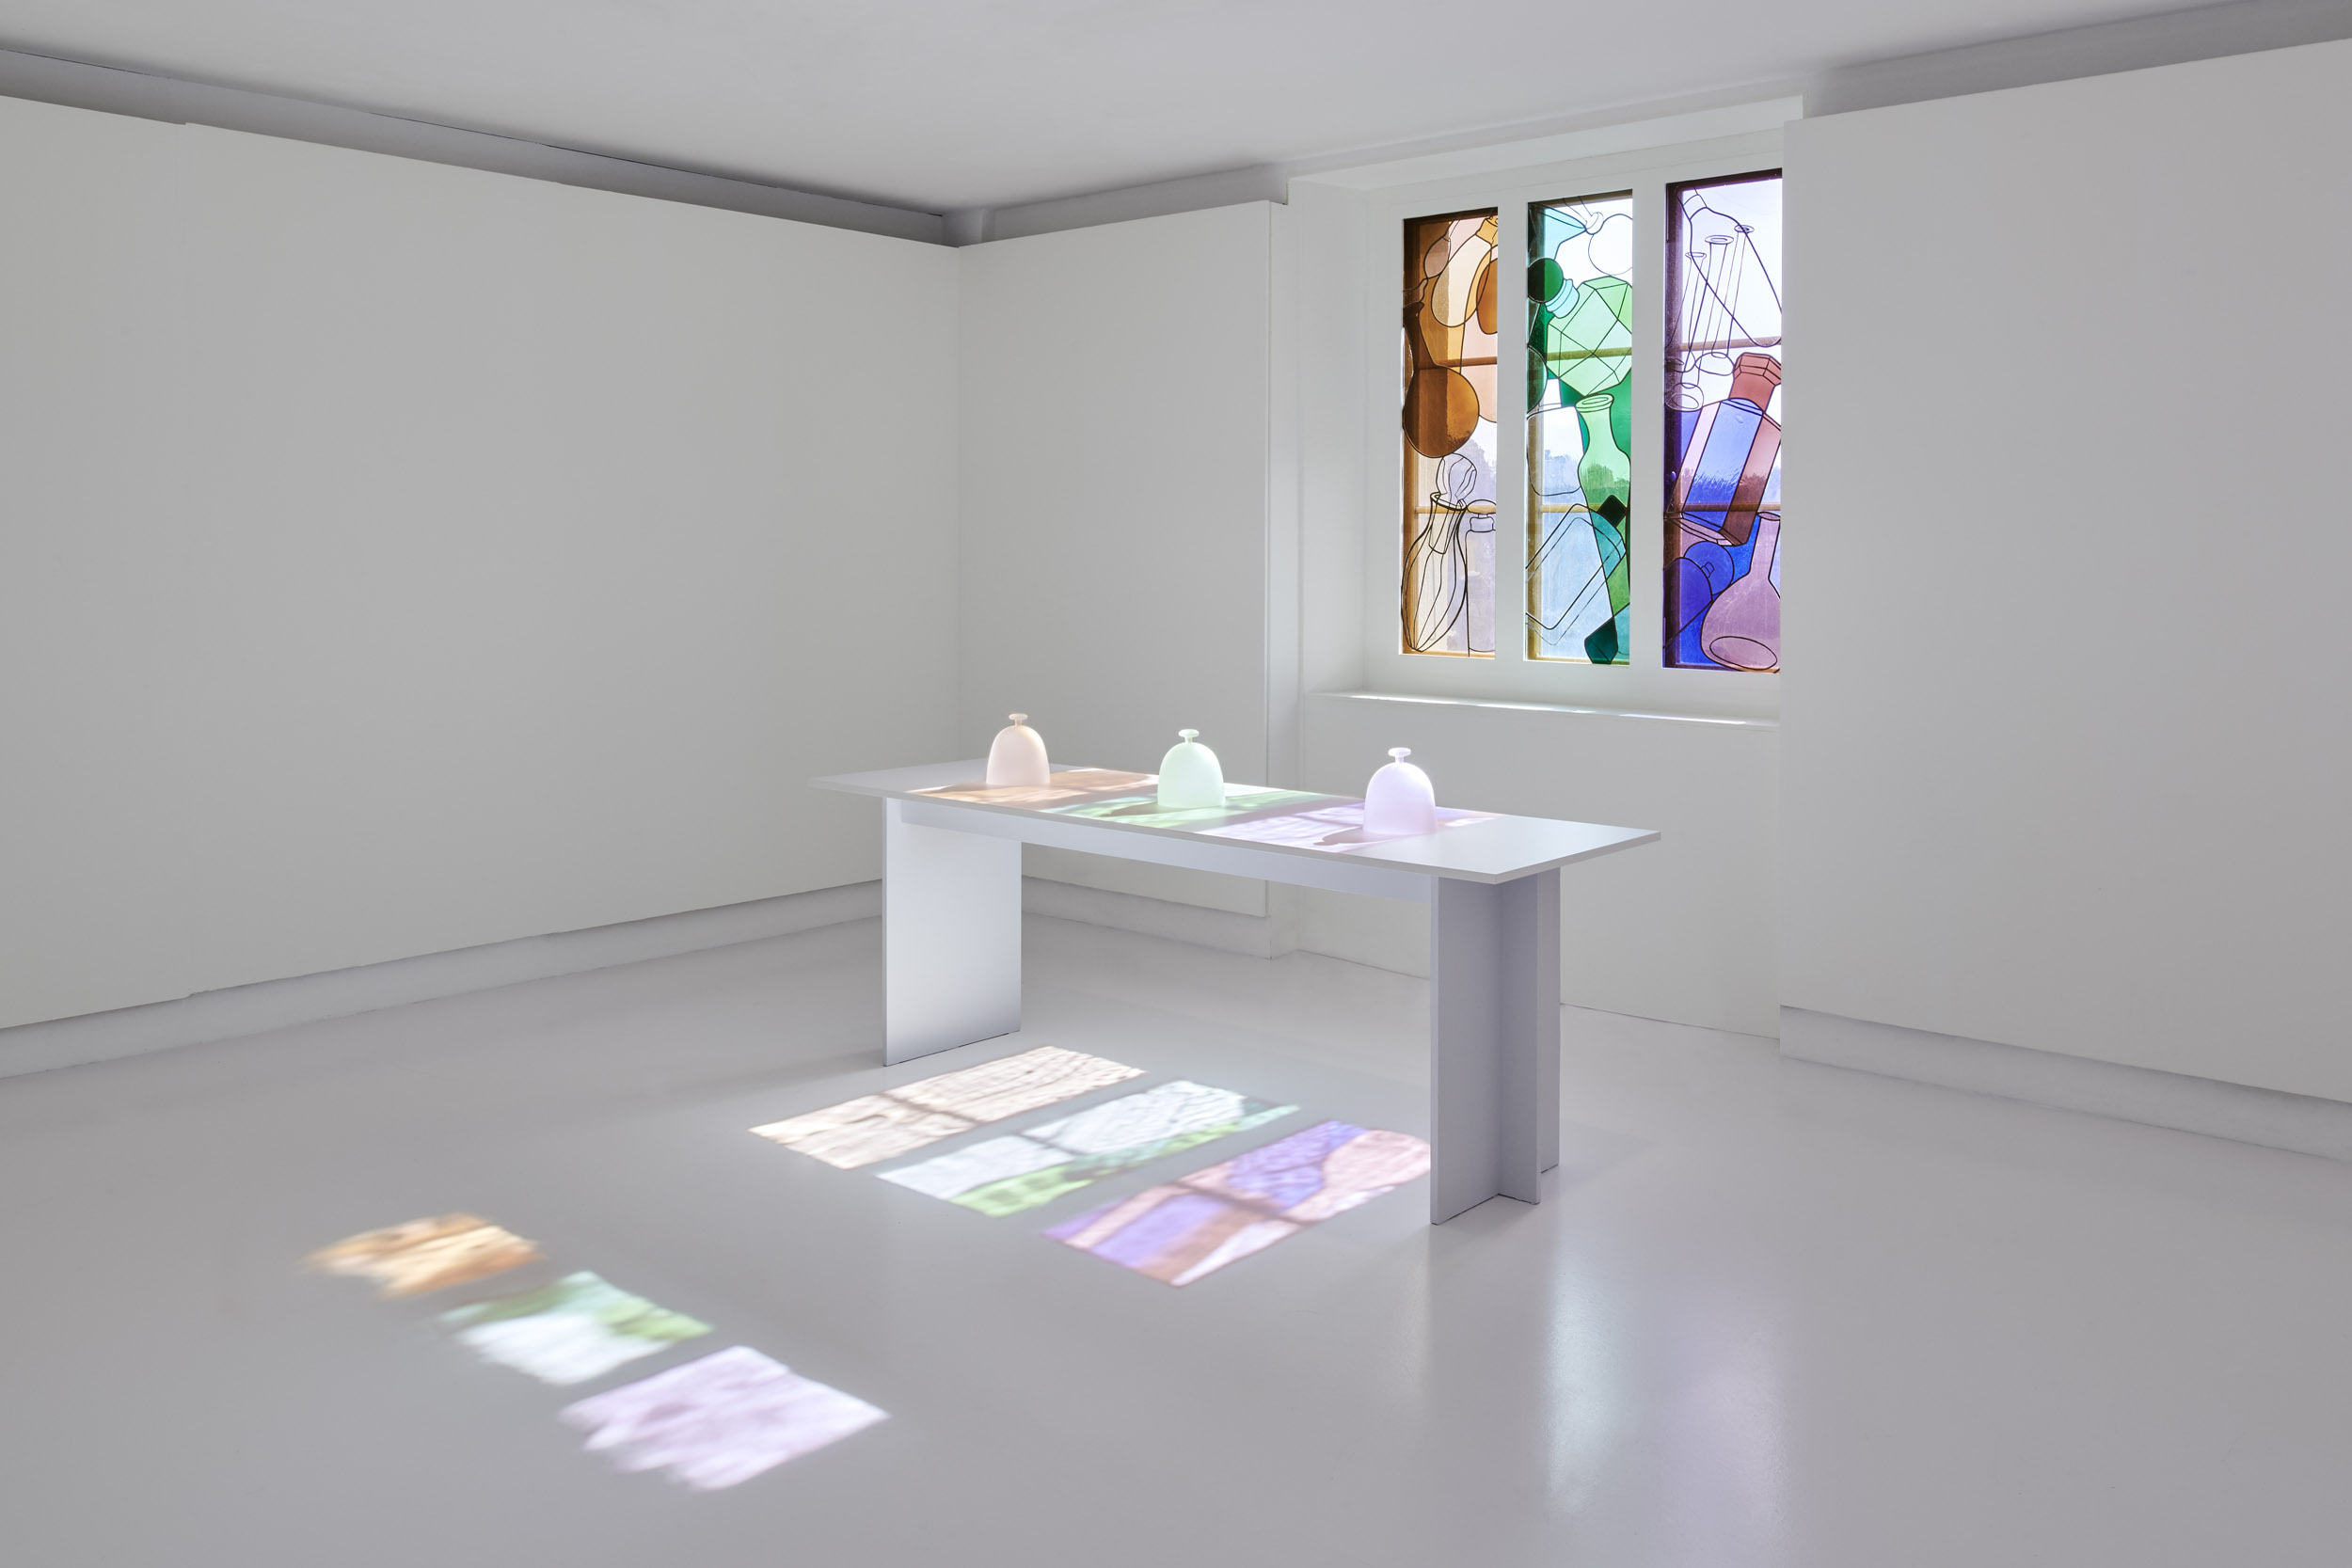 The stained glass window room of the Nez a Nez exhibition